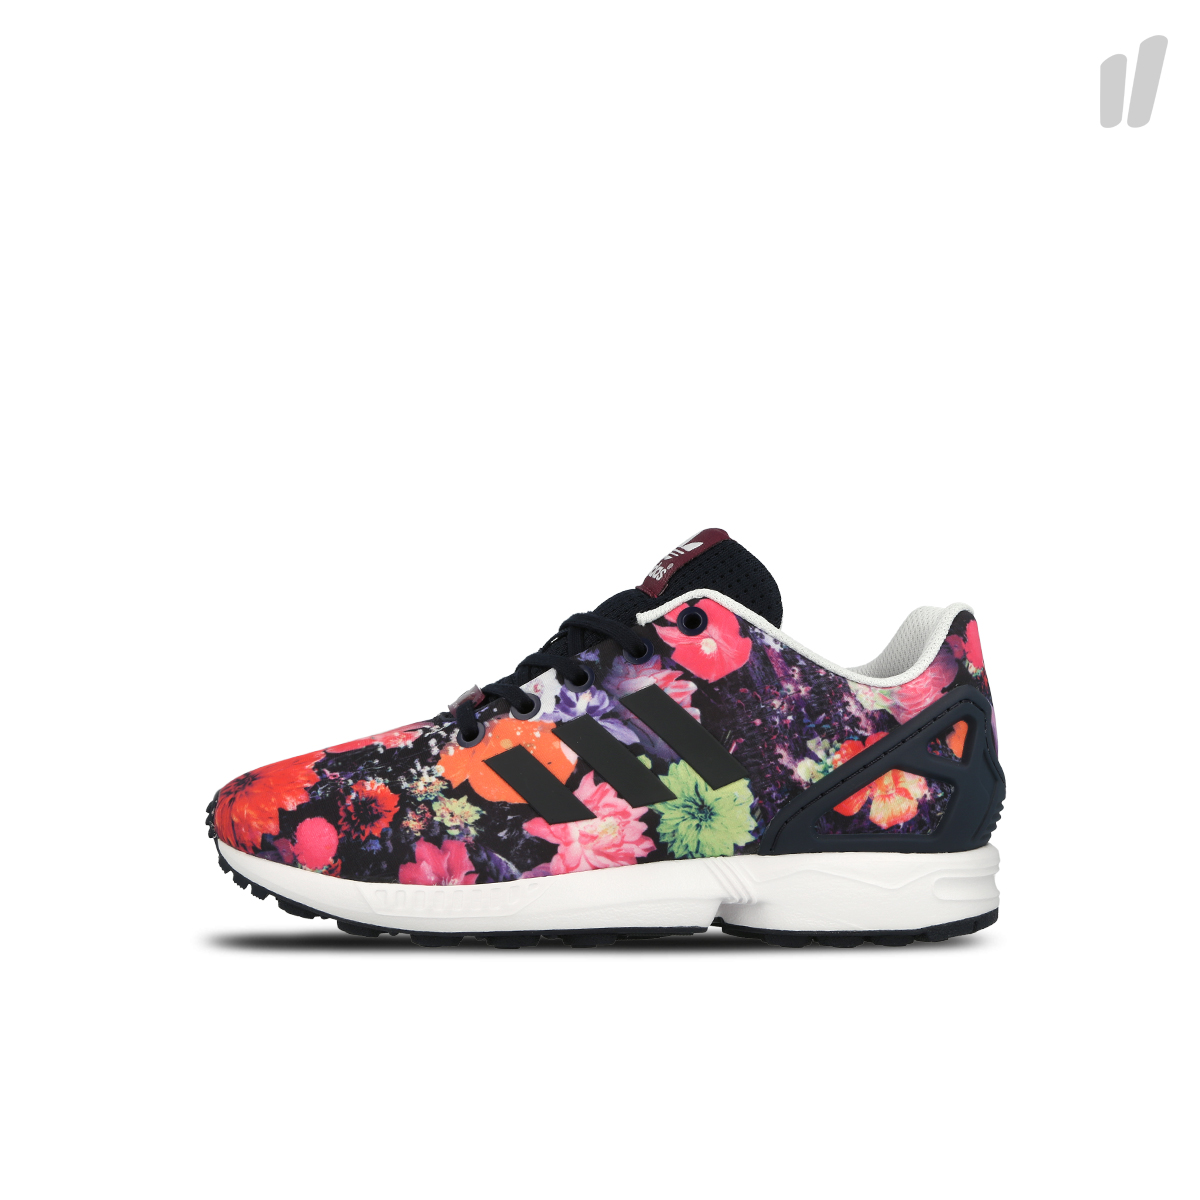 big sale 01d69 6bdc5 Buy cheap Online - adidas zx 500 kids Pink,Fine - Shoes ...